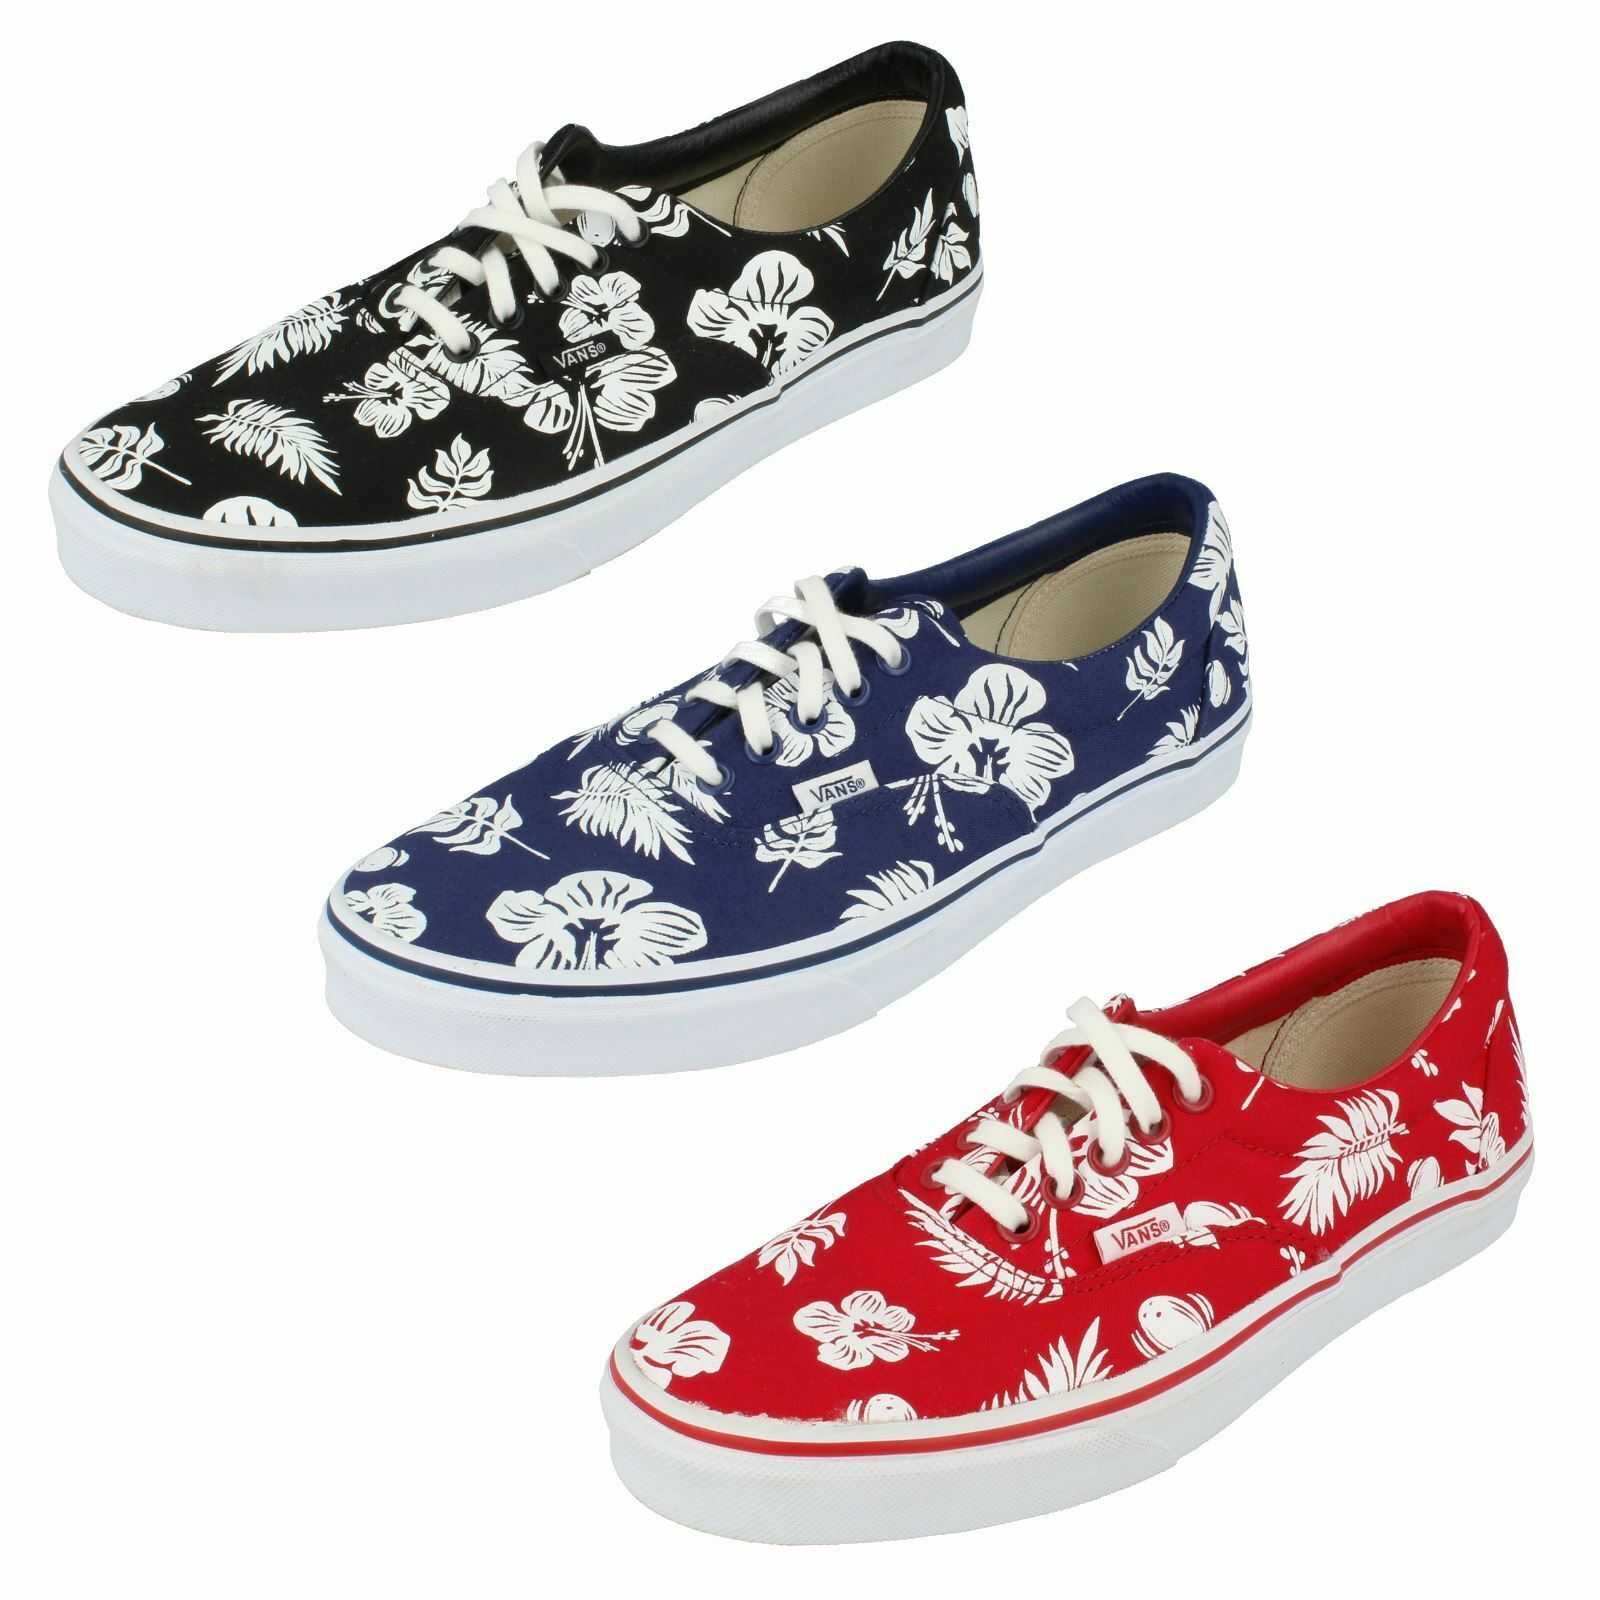 615b08041f VANS Mens Casual Tropicoco White True Red Canvas Shoes W3cen9 UK 6 EU 39  for sale online